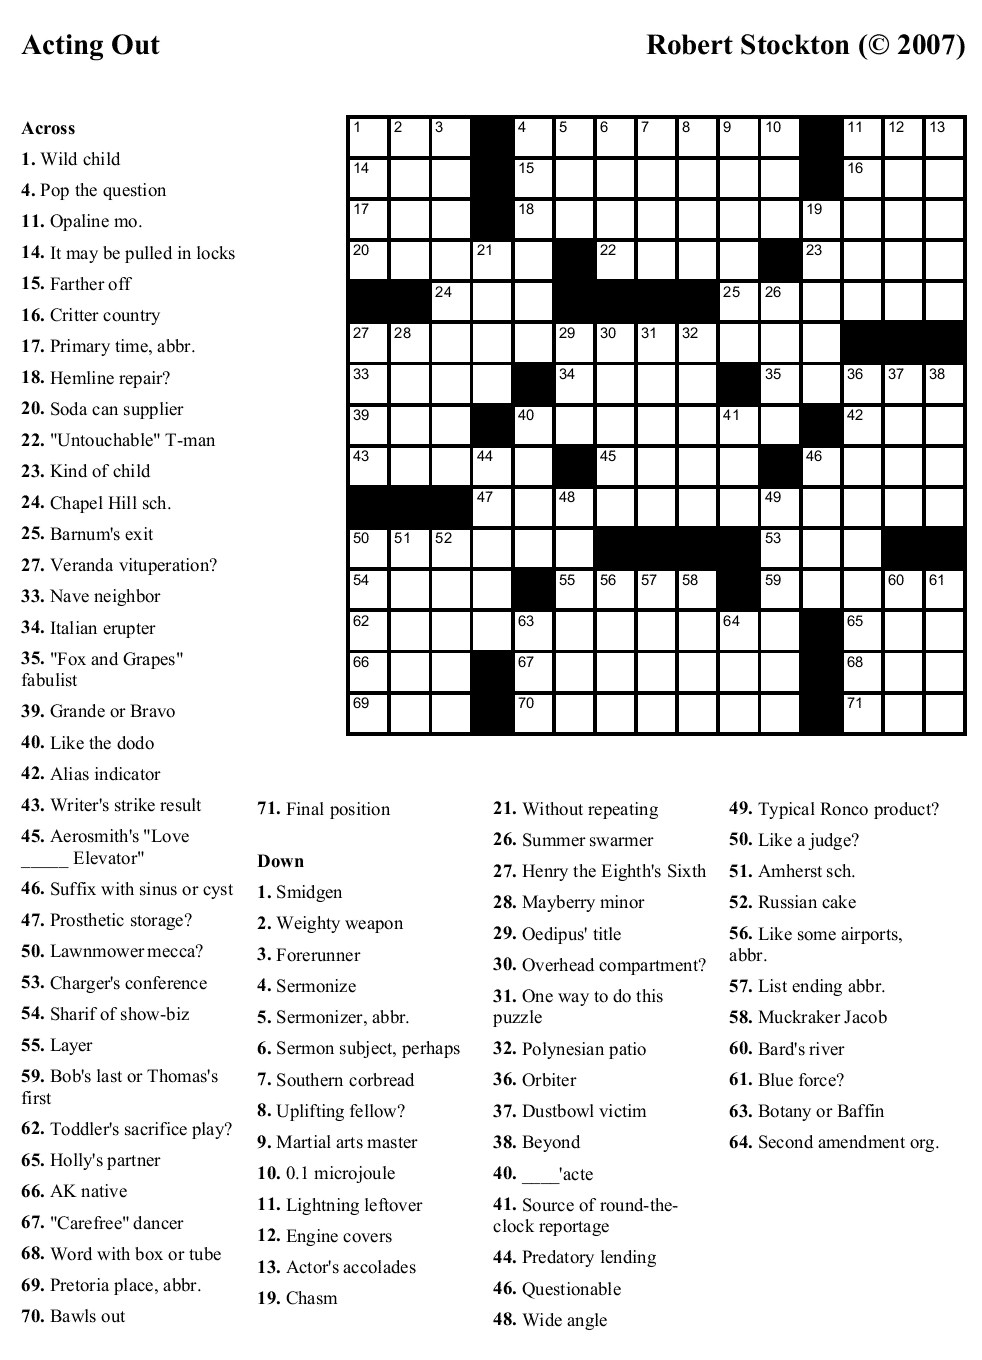 Simple Crossword Puzzles Printable (84+ Images In Collection) Page 1 - Printable Nfl Crossword Puzzles